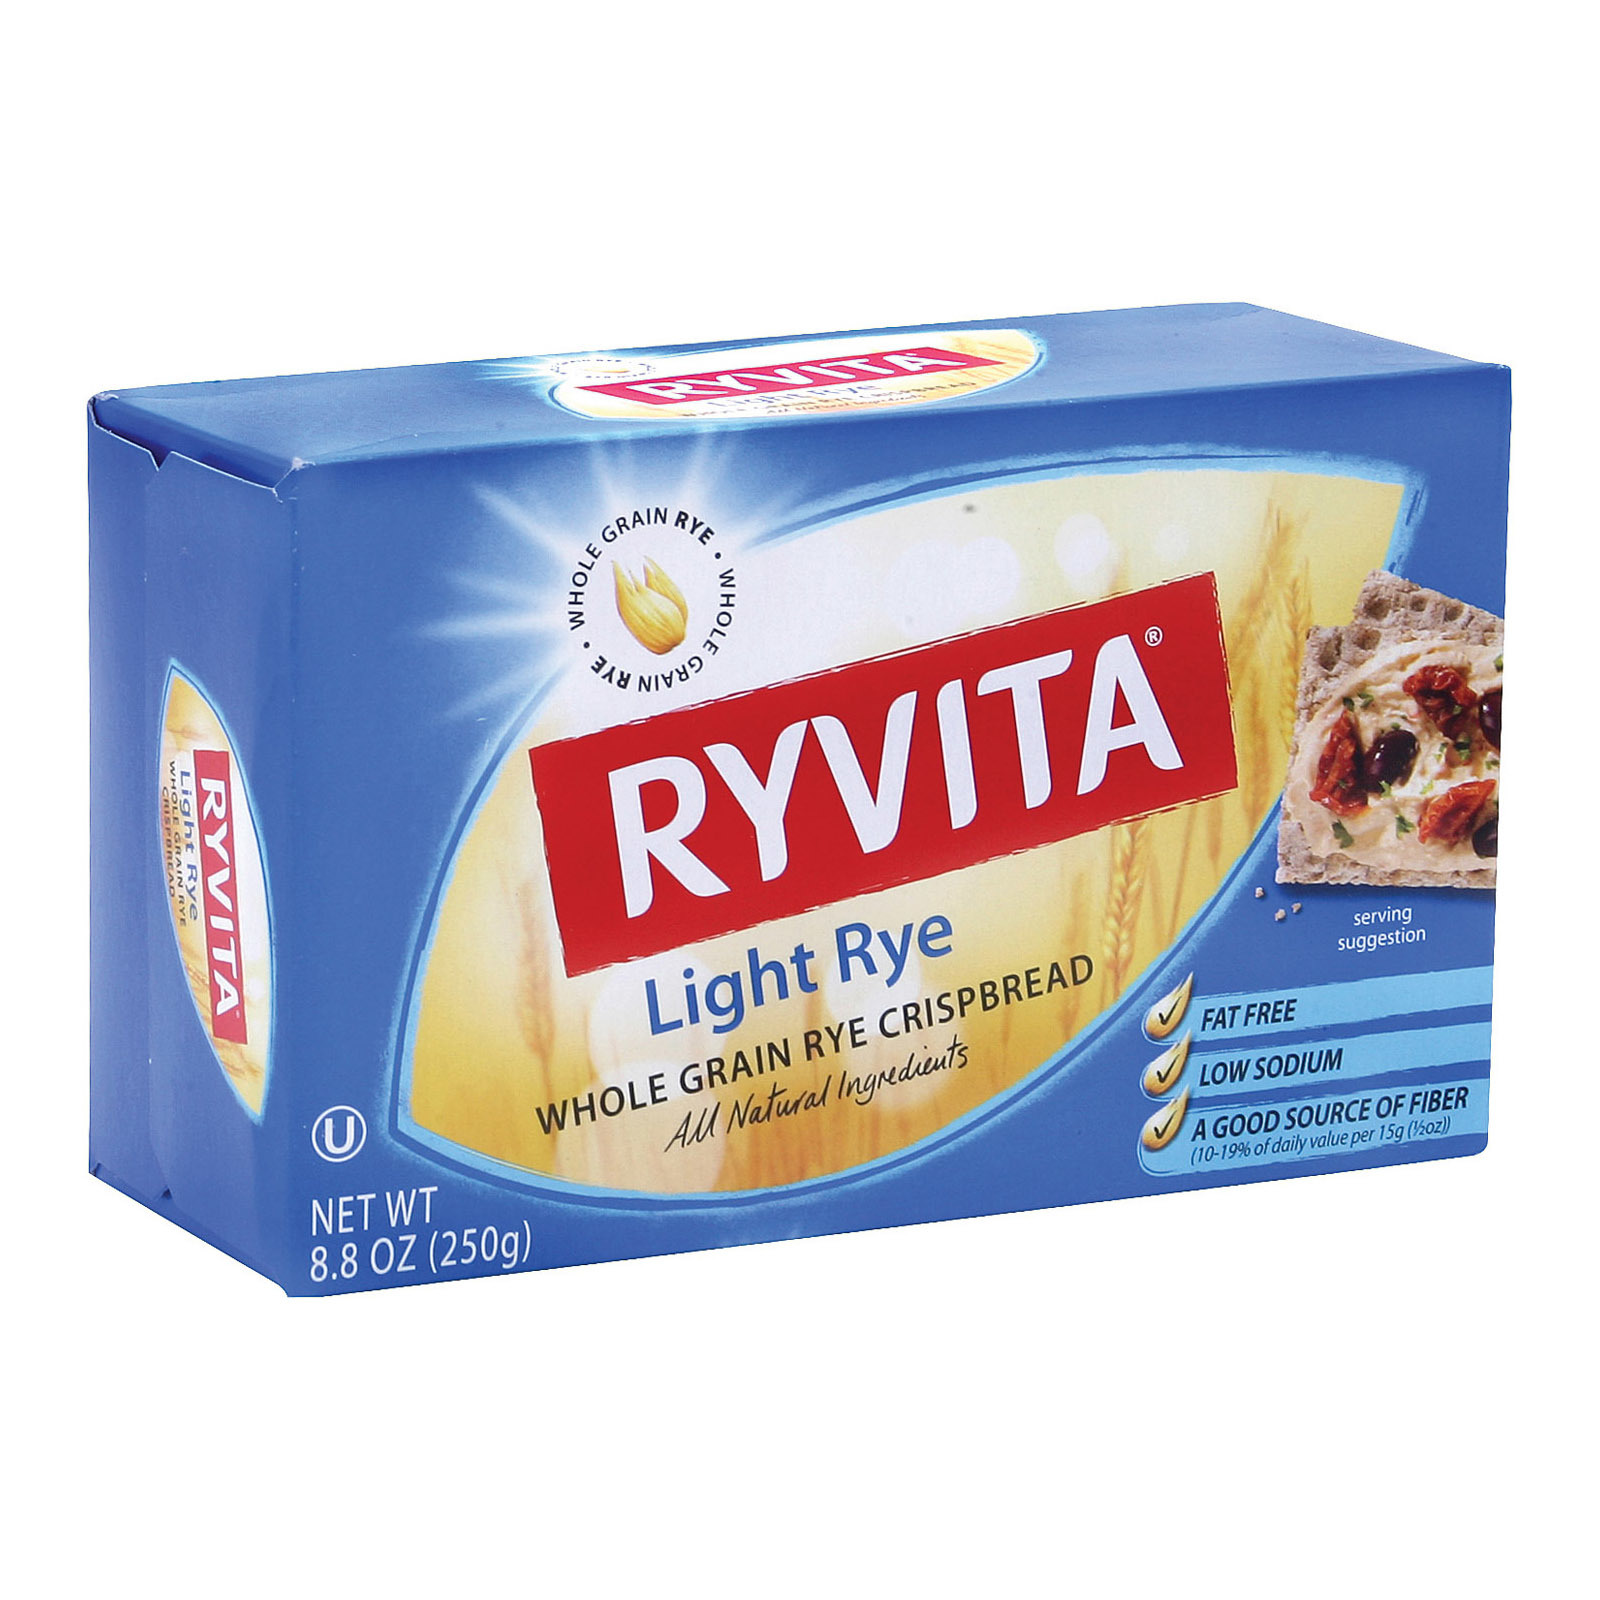 Ryvita Crispbread - Crunch Light Rye - Case of 10 - 8.8 oz.